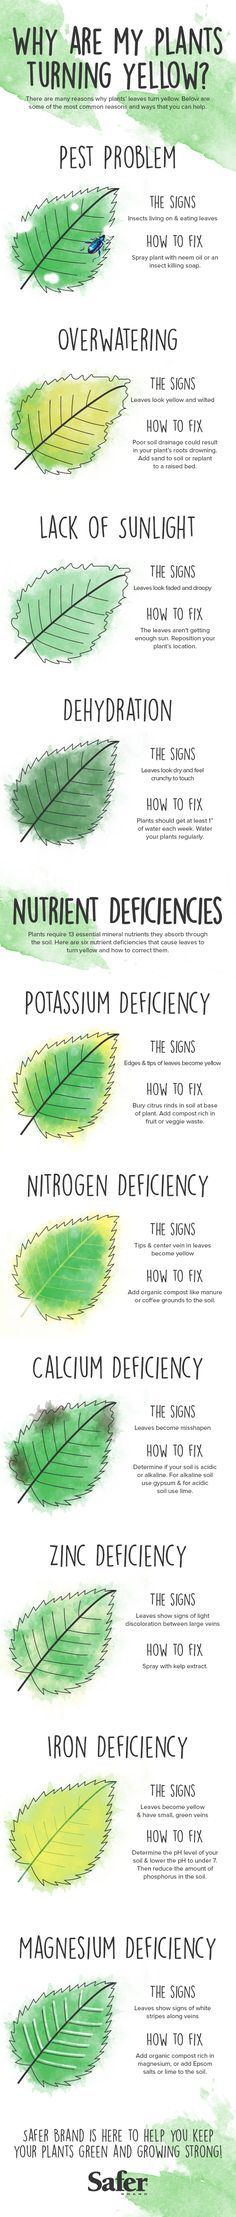 Why do plants turn yellow and how to fix it - Imgur